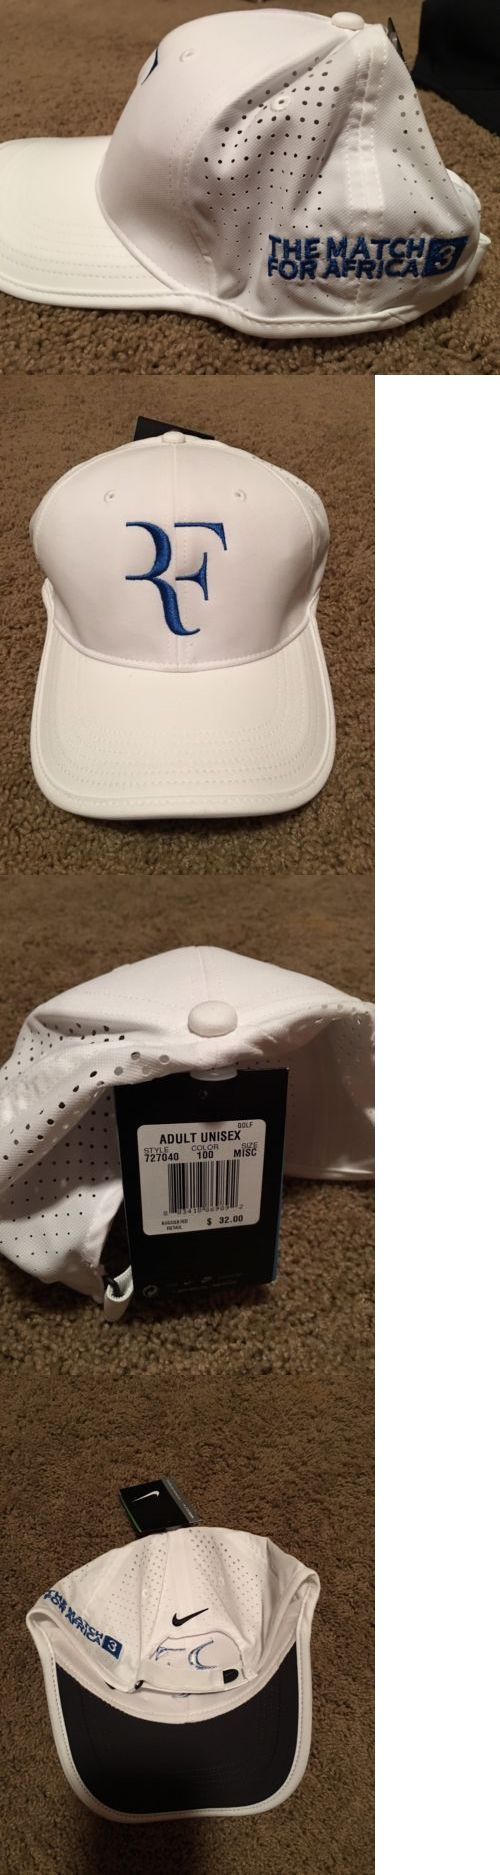 Hats and Headwear 159160: New Nike Federer Rf Match For Africa 3 Hat Cap -> BUY IT NOW ONLY: $275 on eBay!